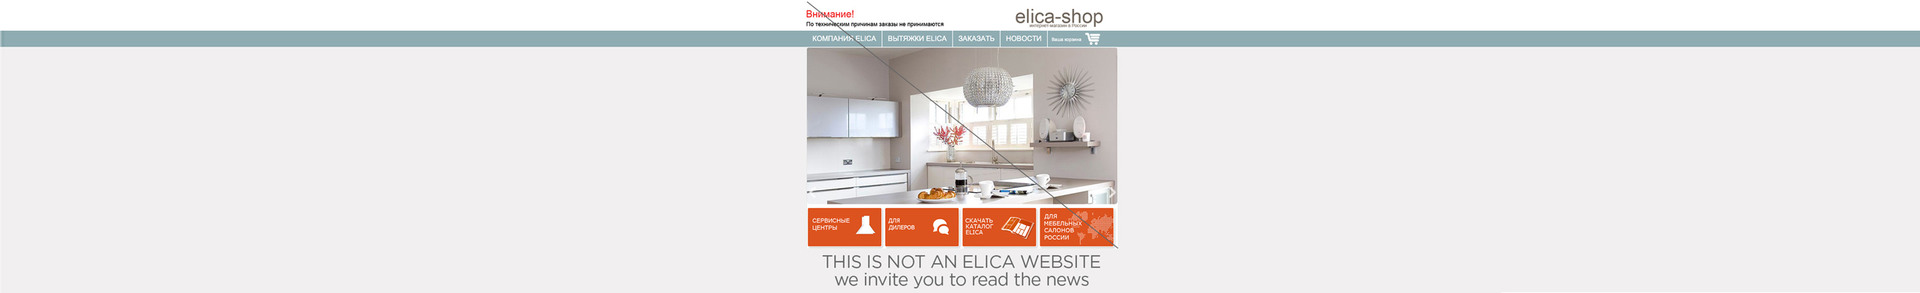 Information letter: Warning about not official Elica site